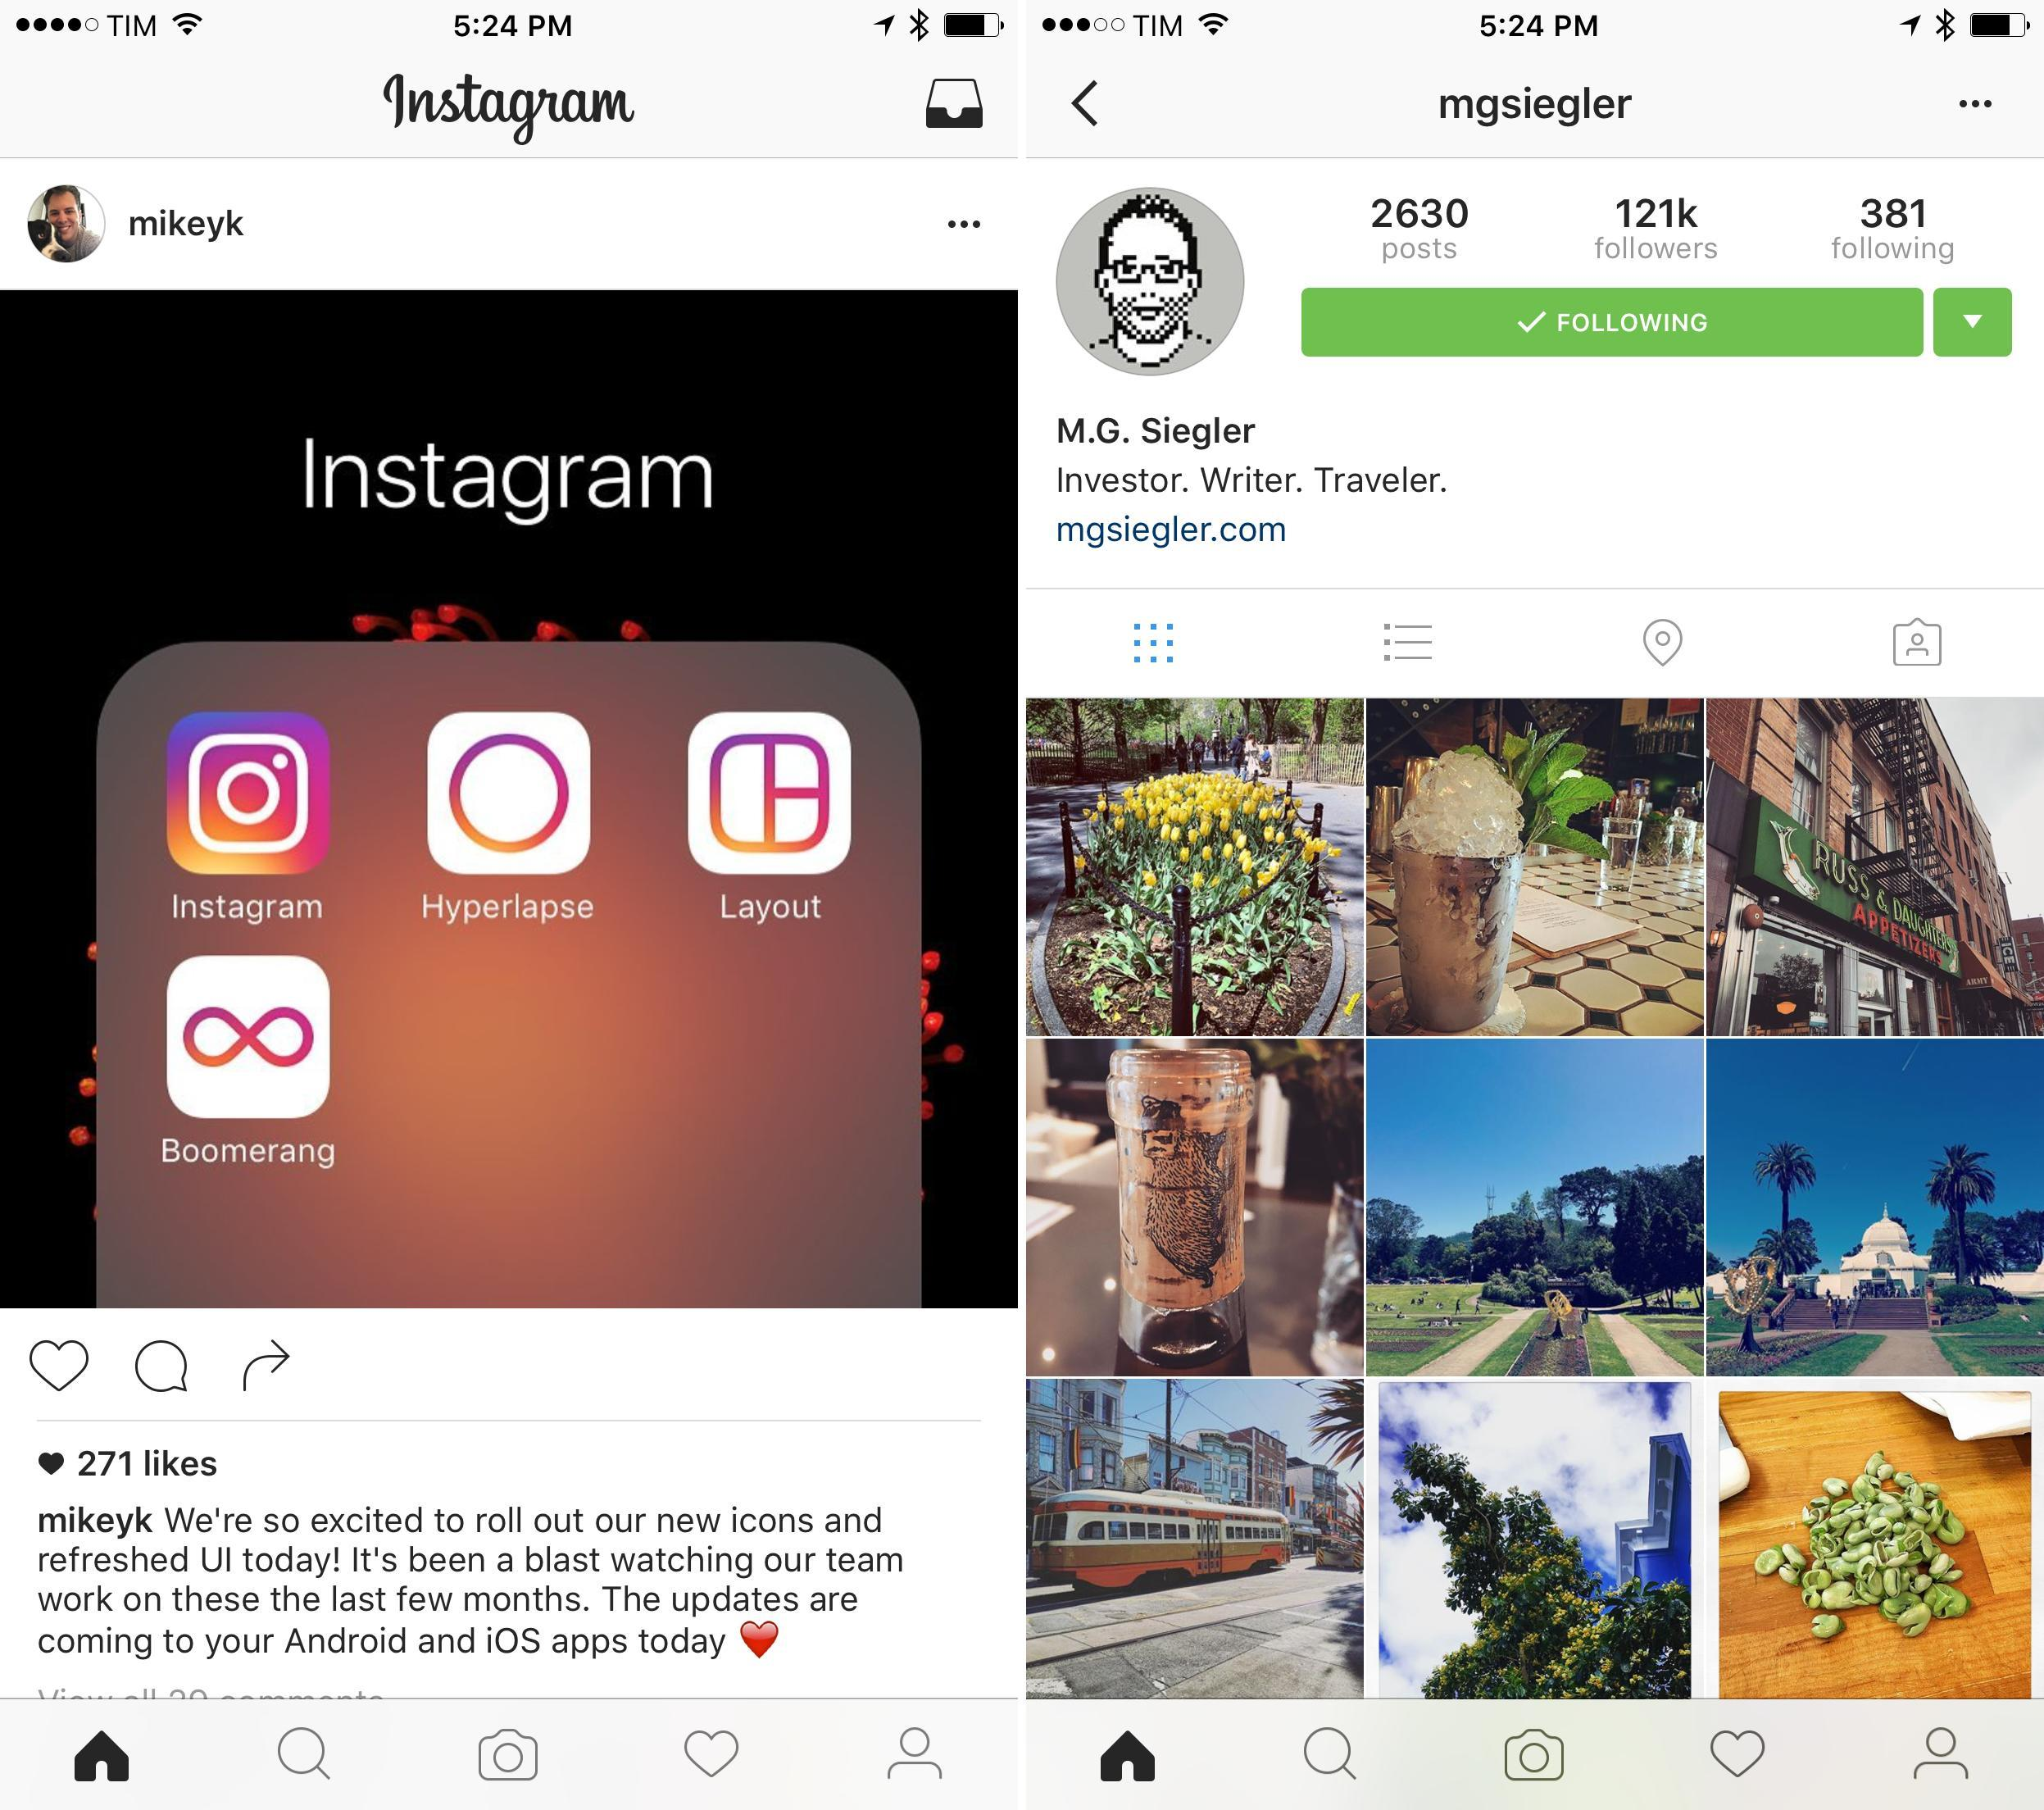 Instagram Says Goodbye to Skeuomorphism with New Icon